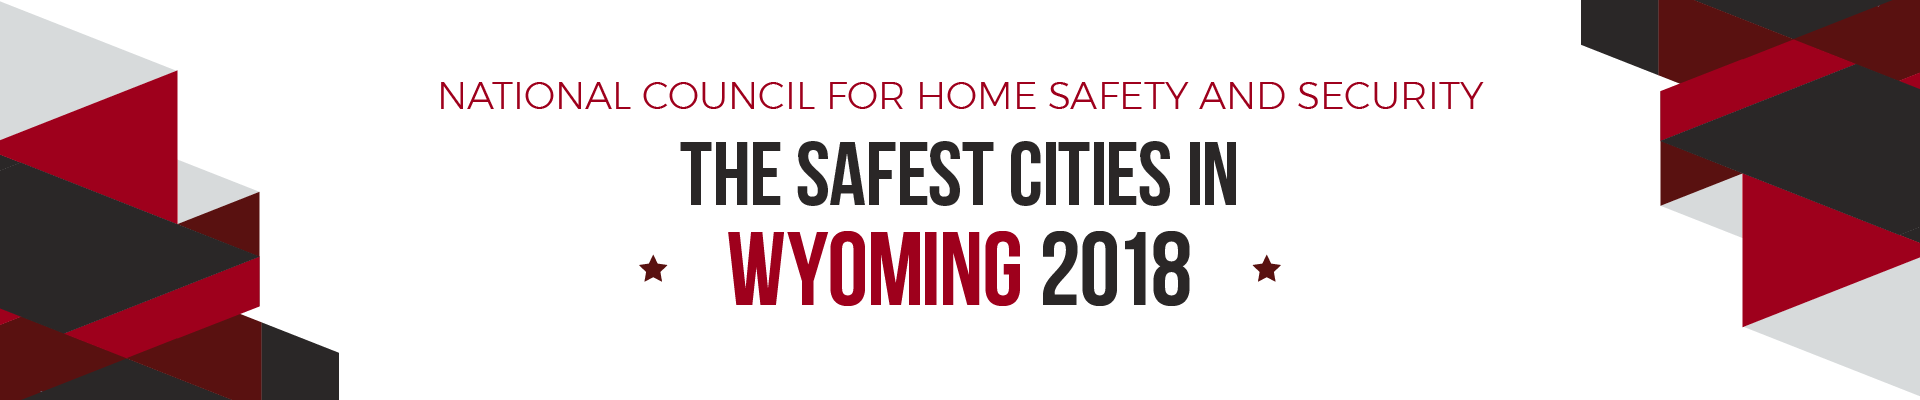 wyoming safe cities 2018